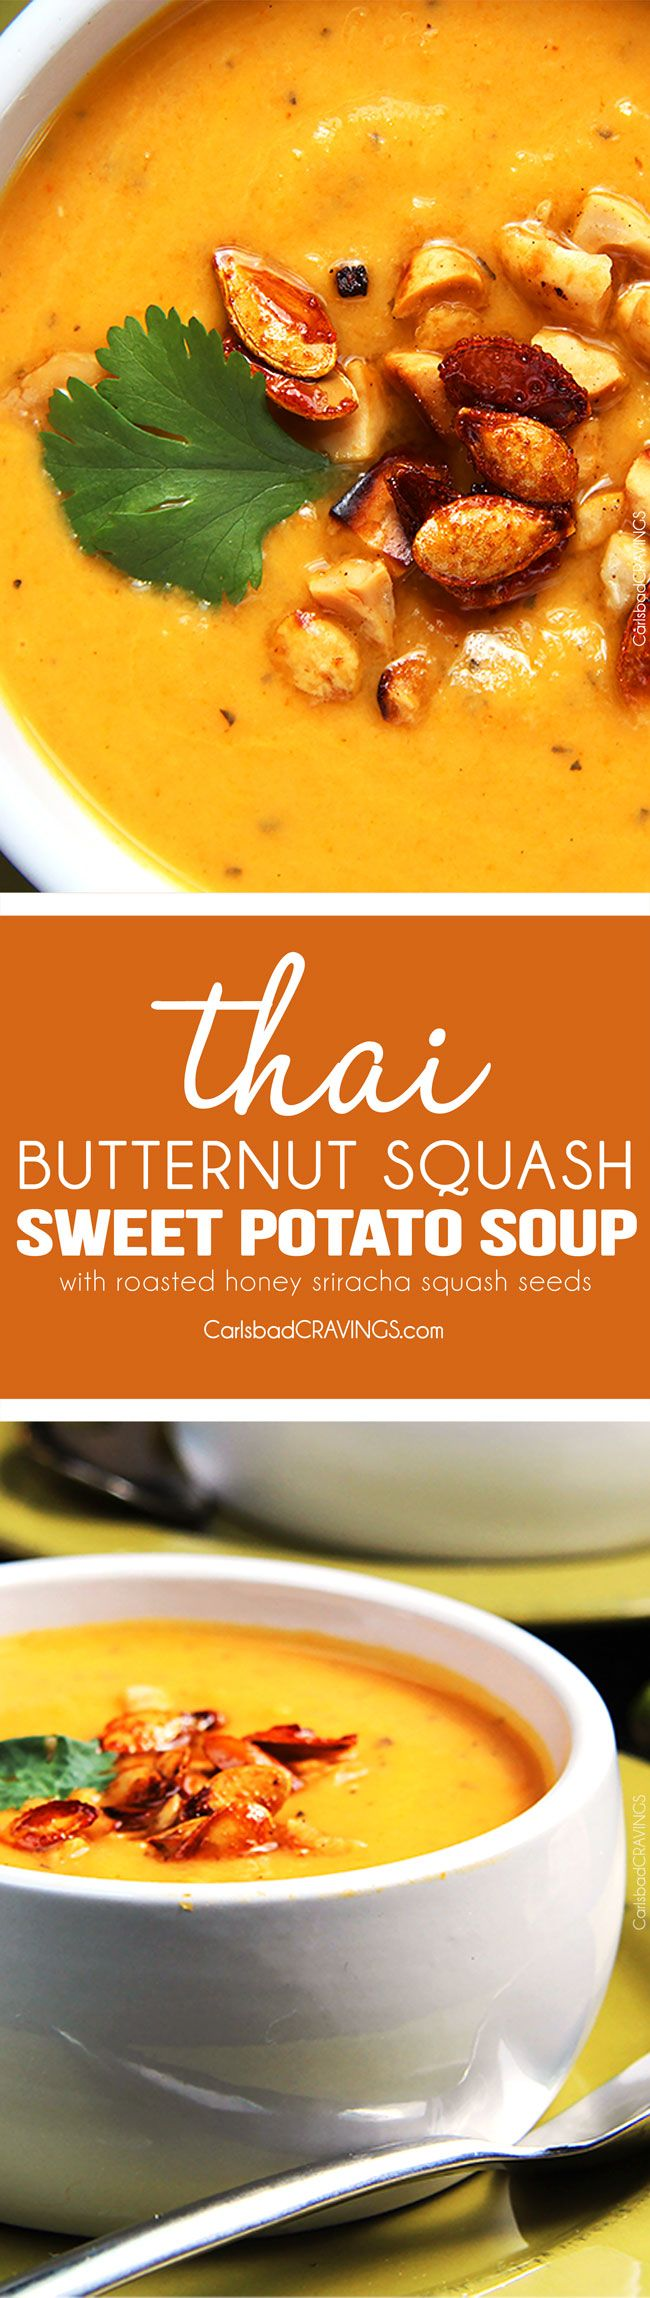 Thai Butternut Squash Sweet Potato Soup (2)